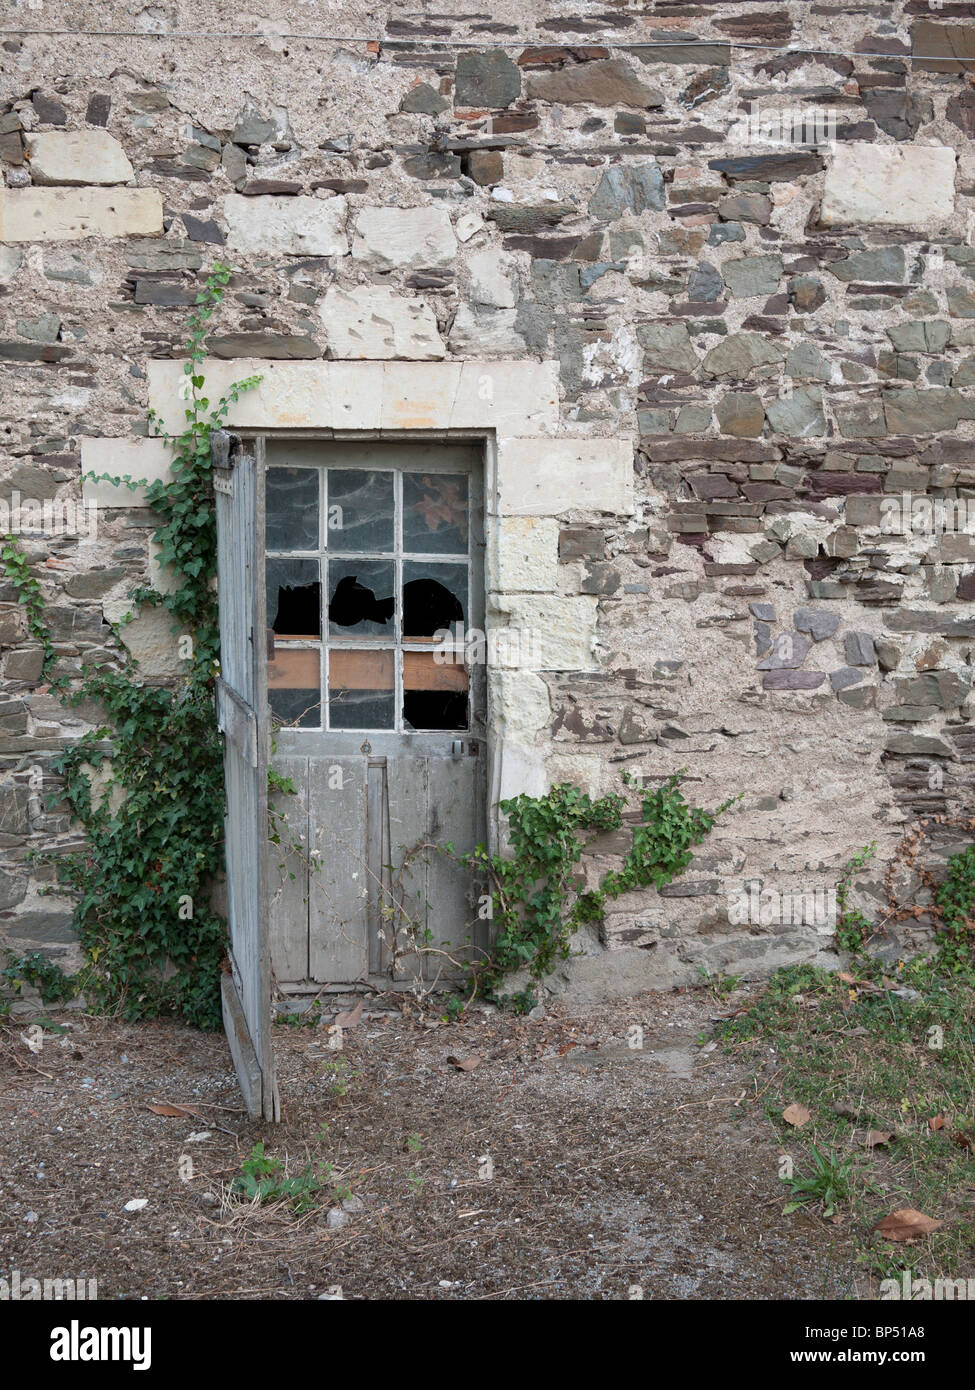 Old disused door in France, Loire region. - Stock Image